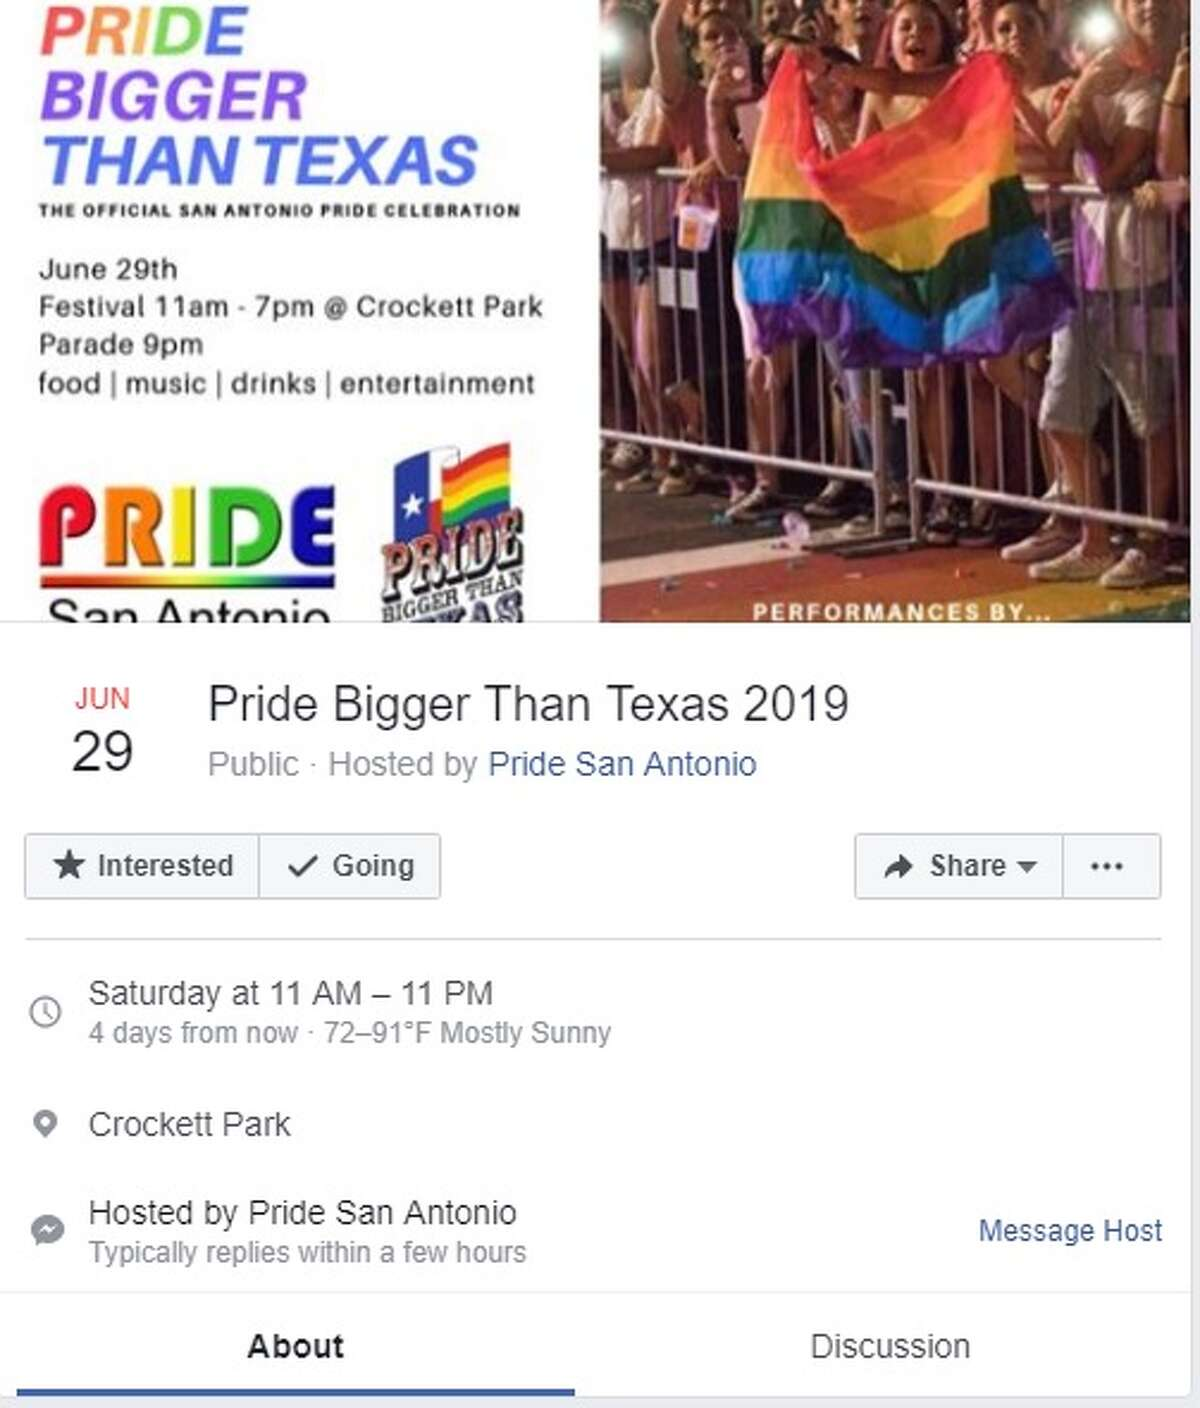 Pride Bigger Than Texas is the official San Antonio Pride Celebration. The festival runs from 11 a.m. to 11 p.m. Saturday, June 29 at Crockett Park. Parade begins at 9 p.m.